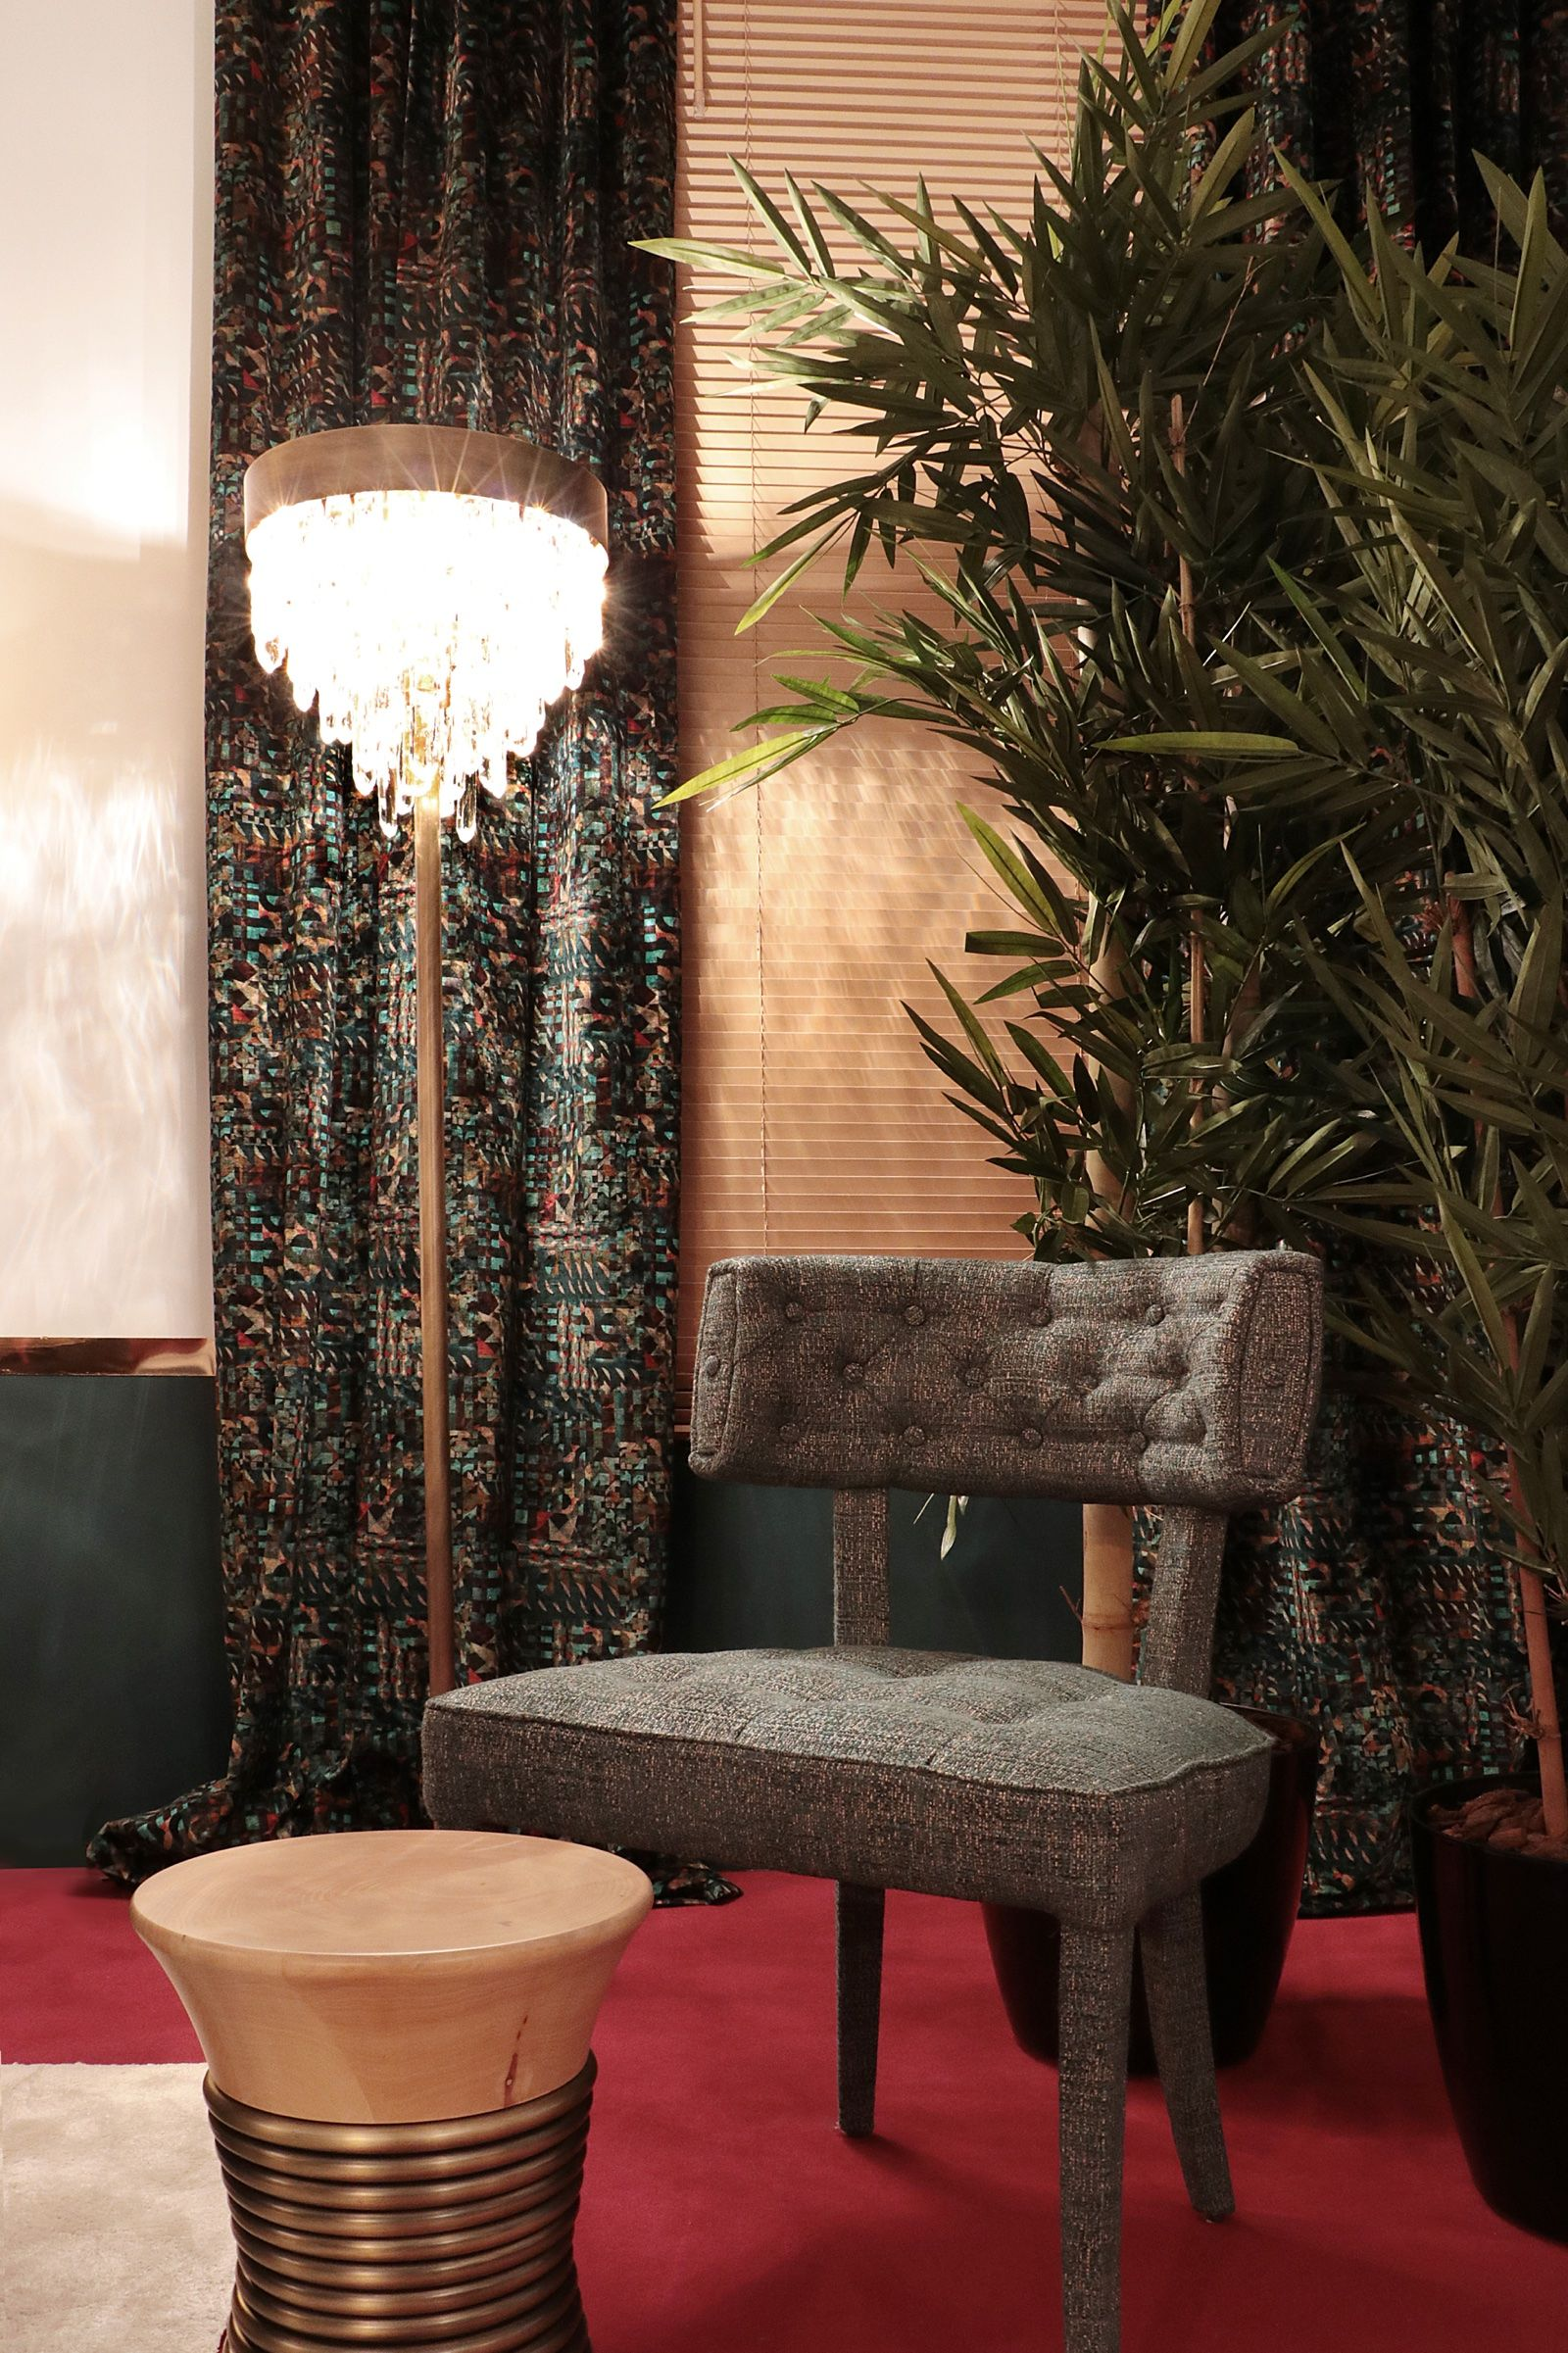 Isaloni trends and news why not get inspired by these amazing